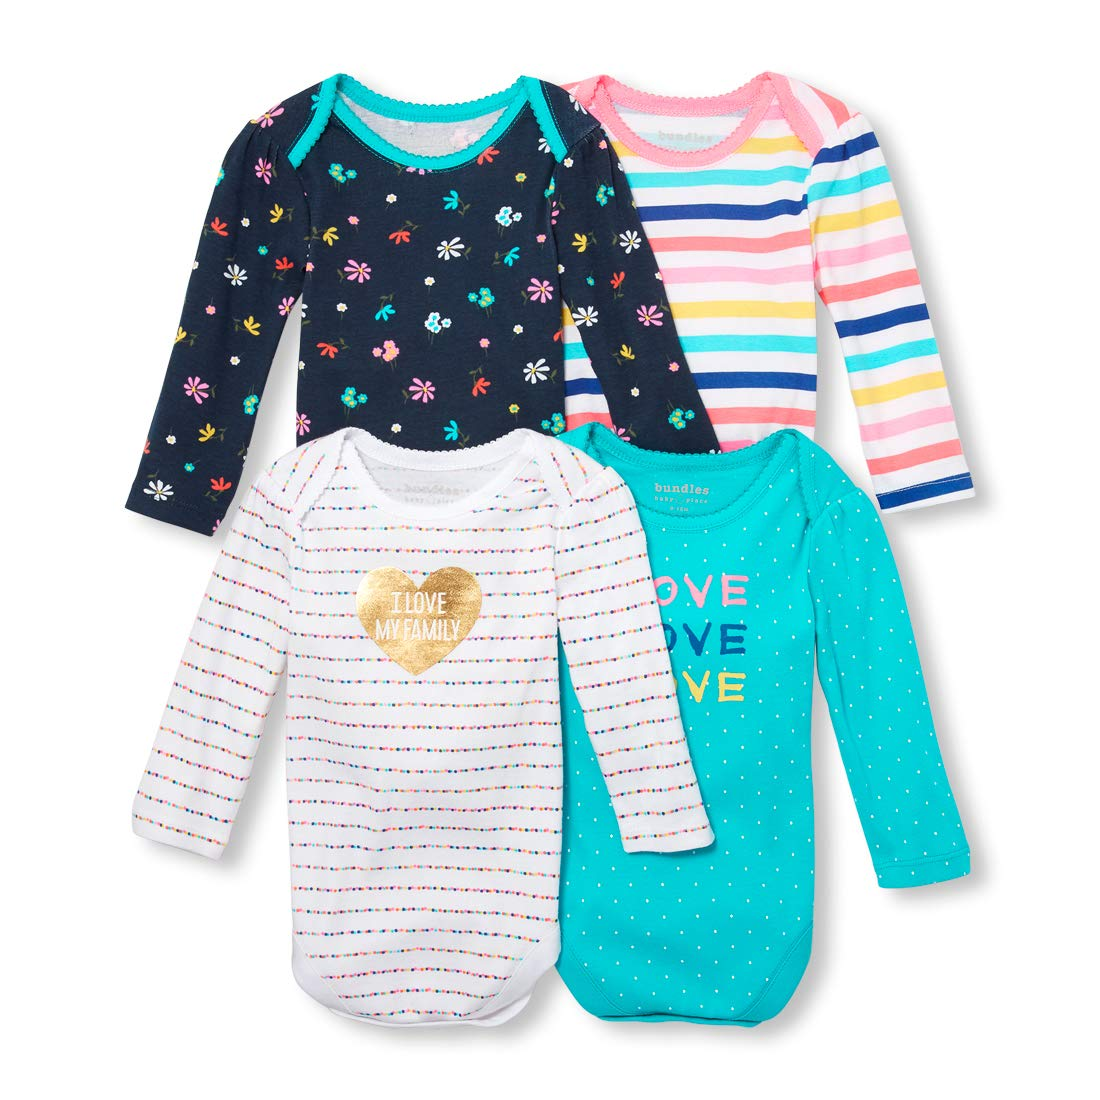 The Children's Place Baby Girls I Love My Family Layette Set, Peacock Blue, 18-24MONTH